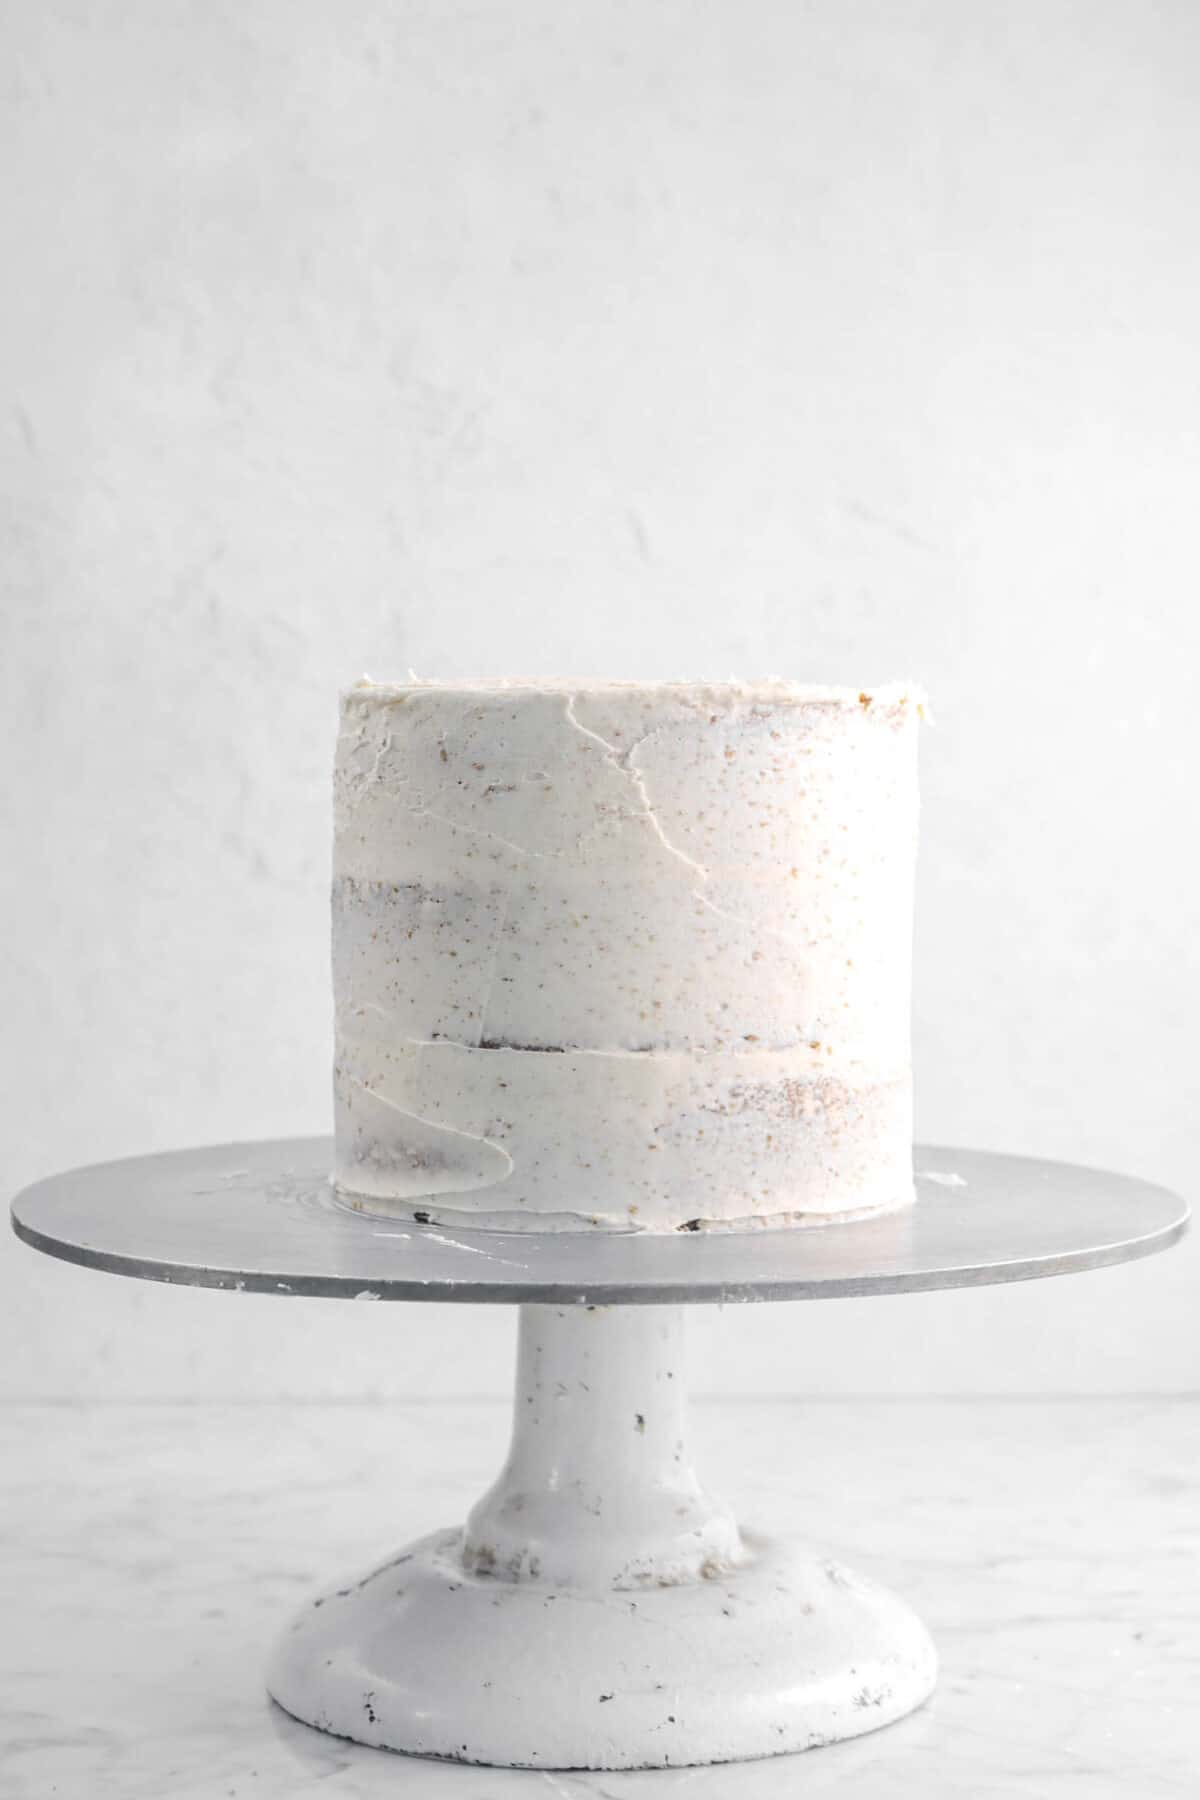 chai frosting spread over cake